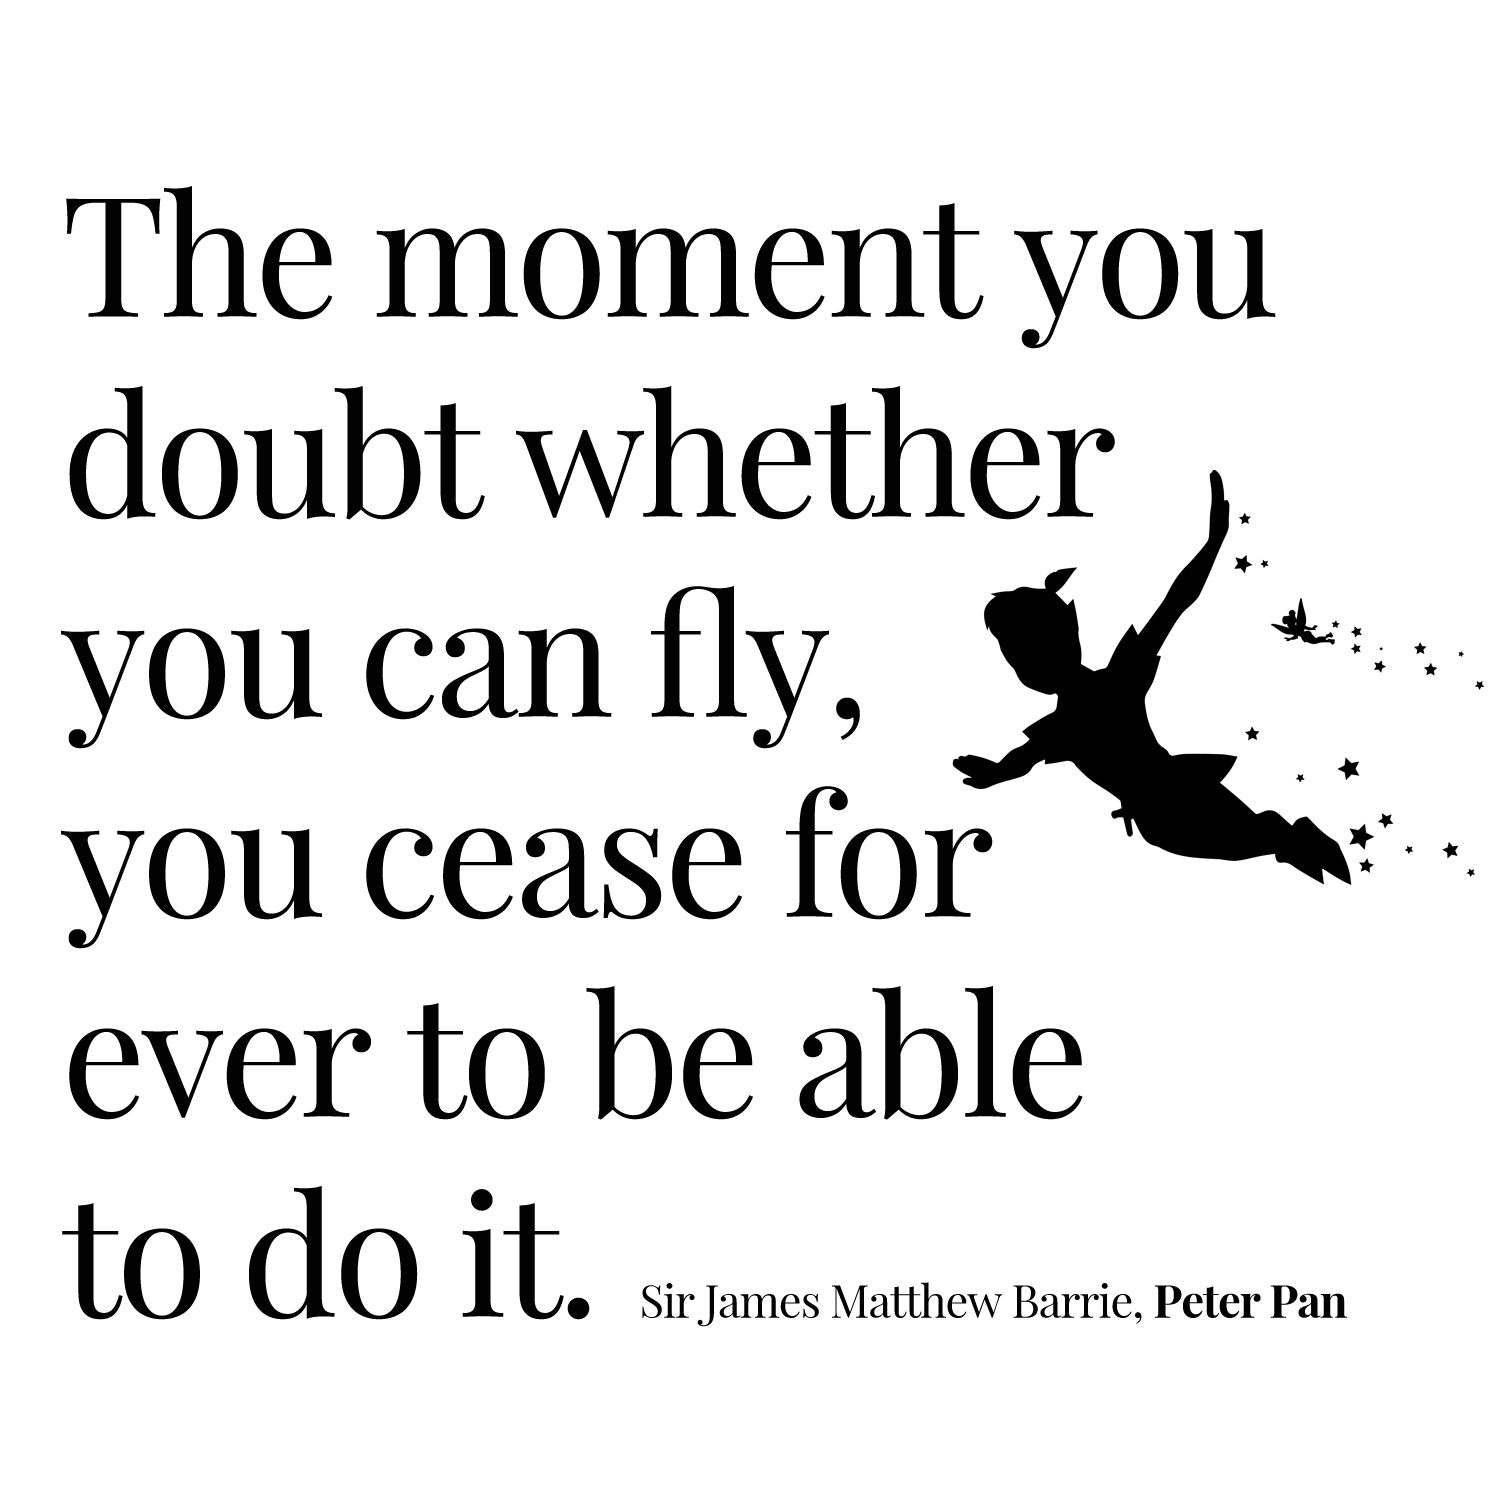 Thoughtoftheday The Moment You Doubt Whether You Can Fly You Cease For Ever To Be Able To Do It Inspiring Quotes About Life Classroom Quotes Powerful Words